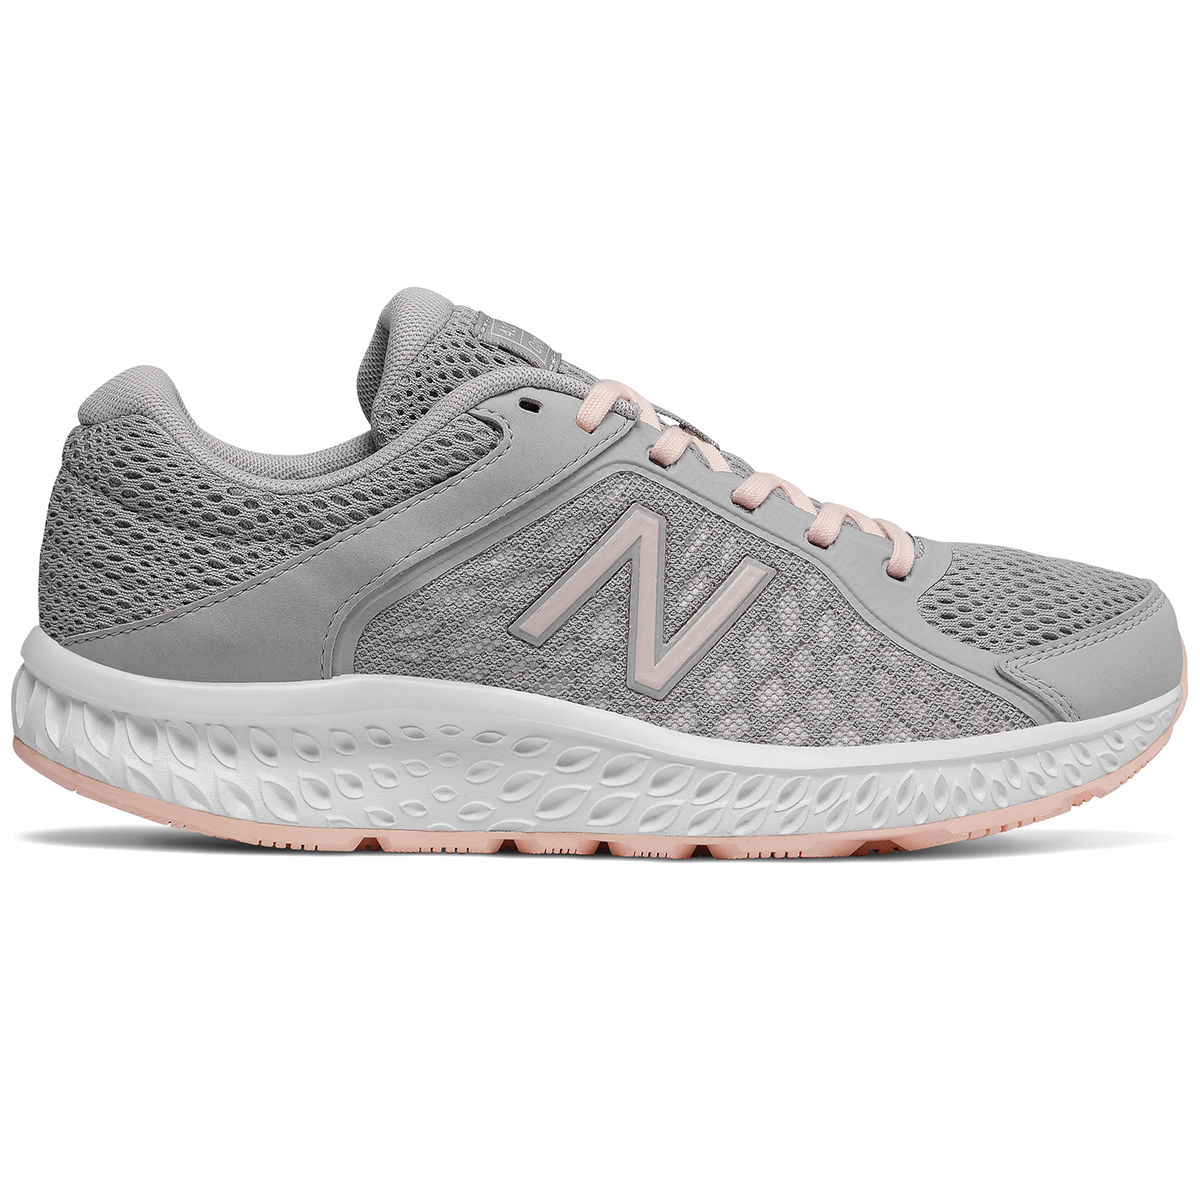 New Balance Women's 420V4 Running Shoes - Black, 9.5